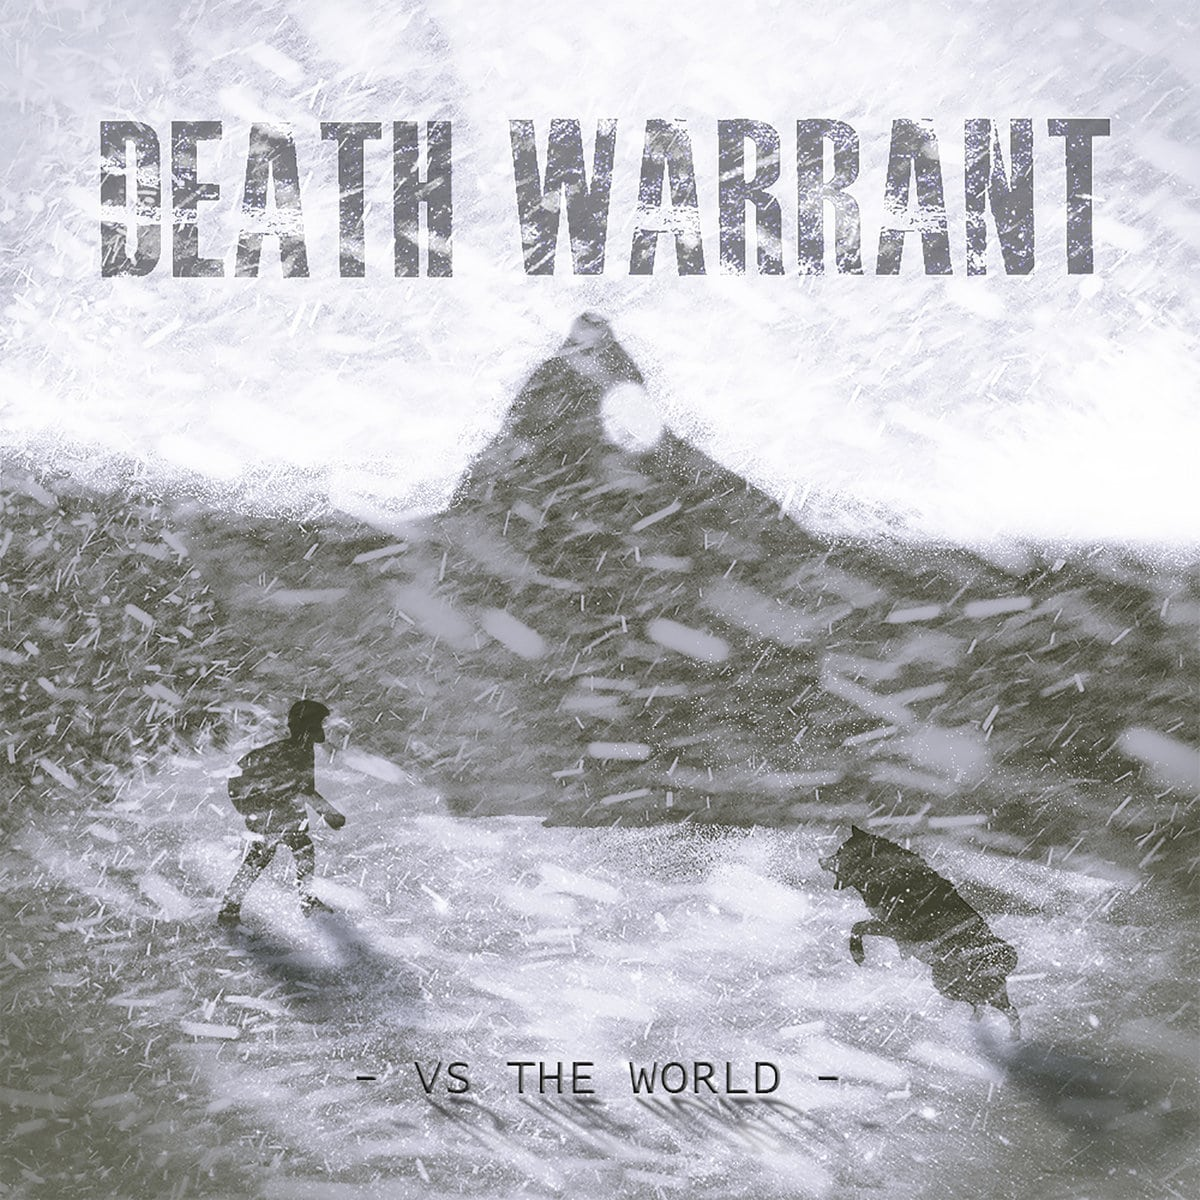 DEATH WARRANT vs the world